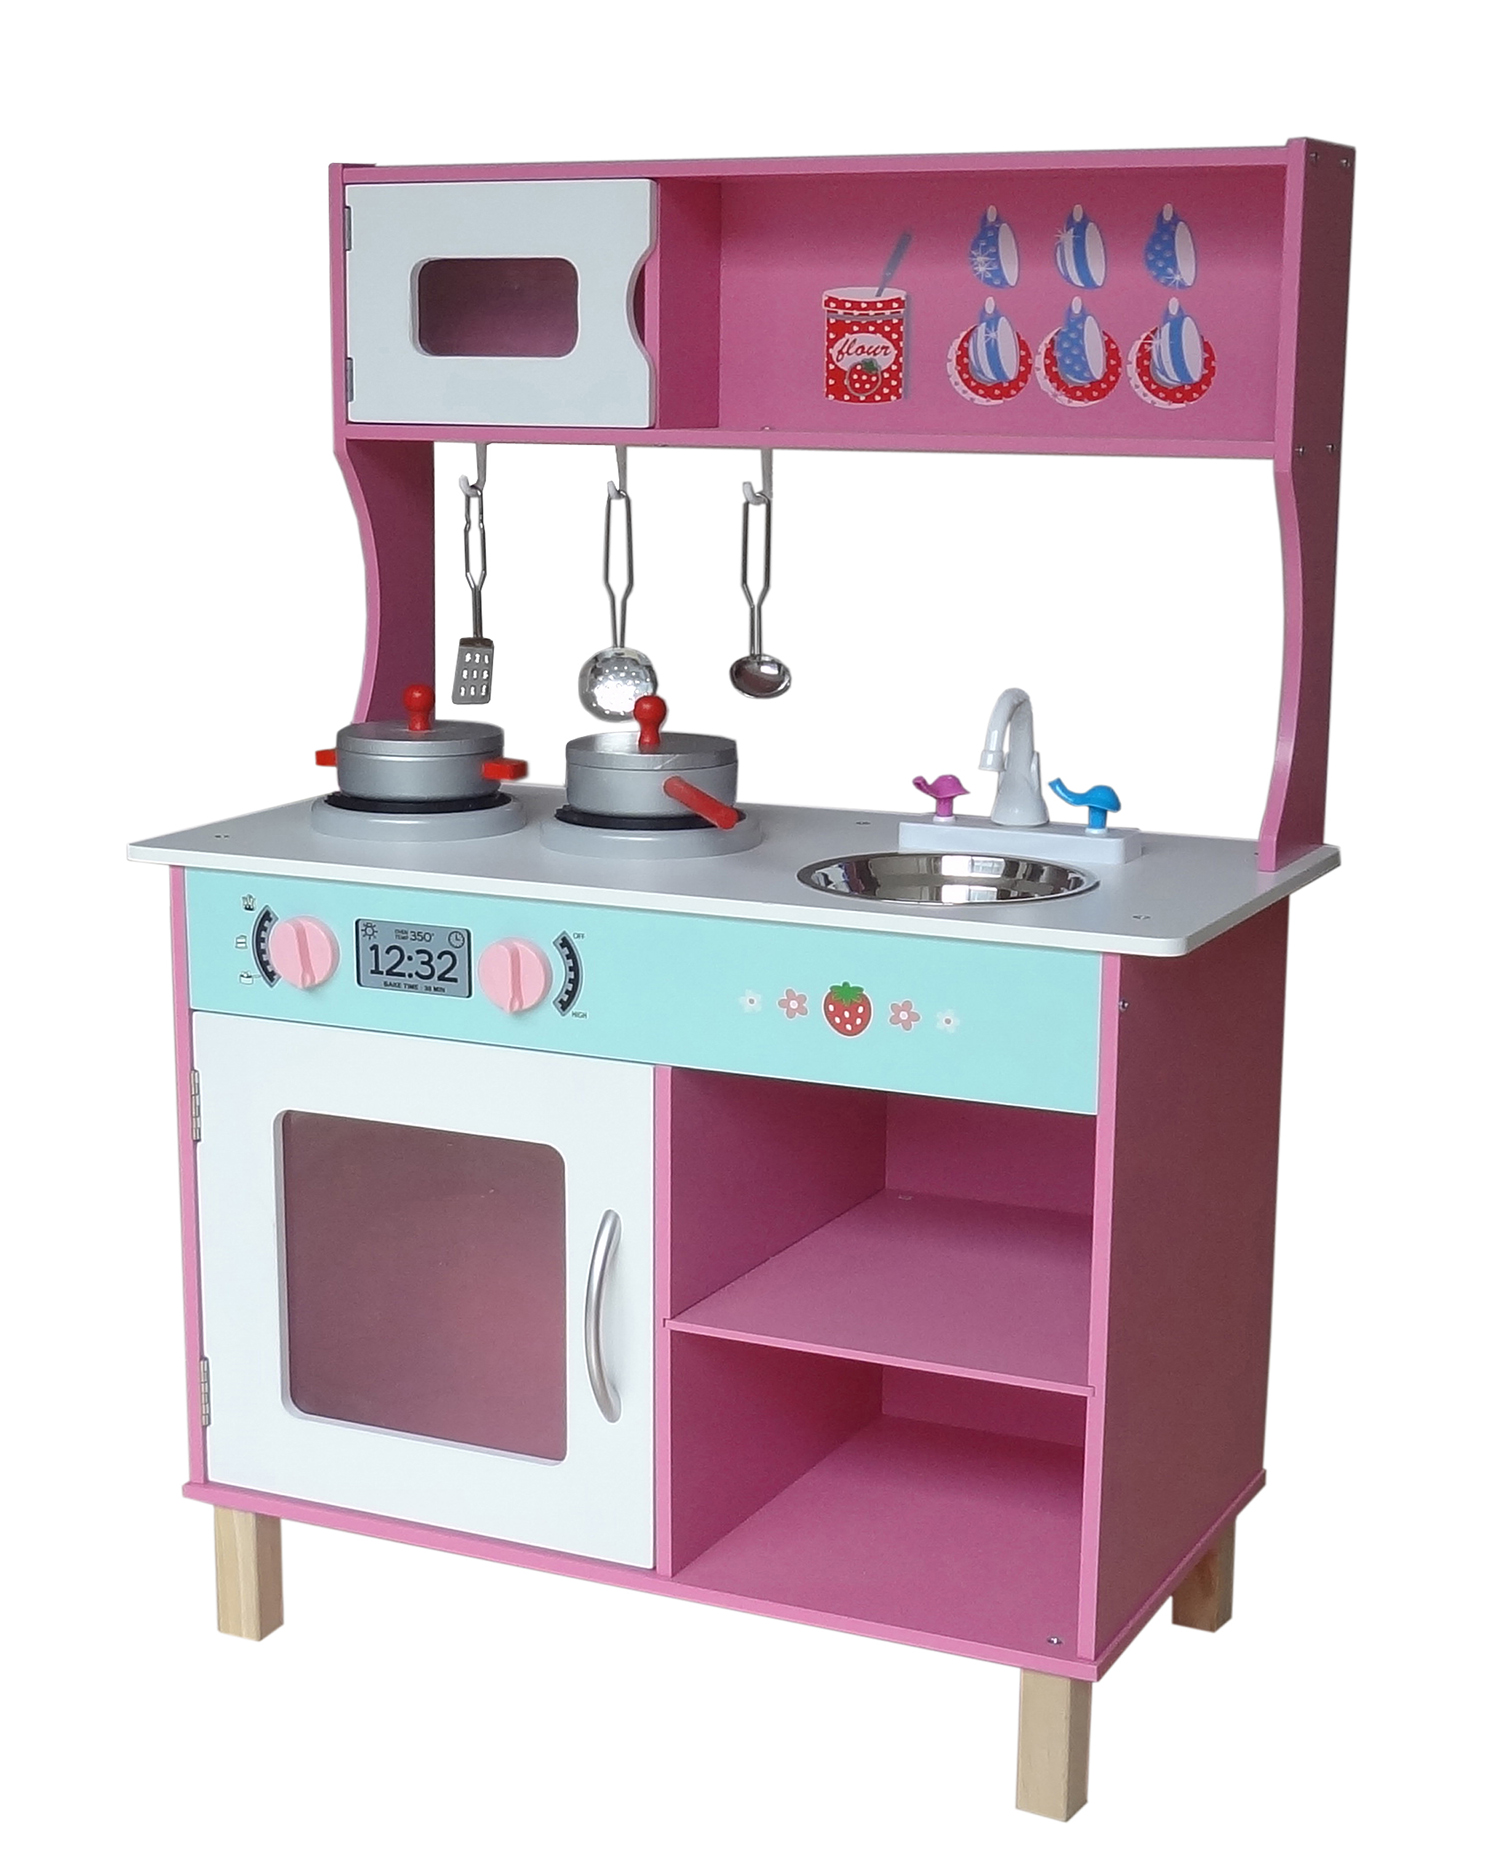 Wood Kitchen Equipment : Kiddi style large modern wooden kitchen pink kiddy